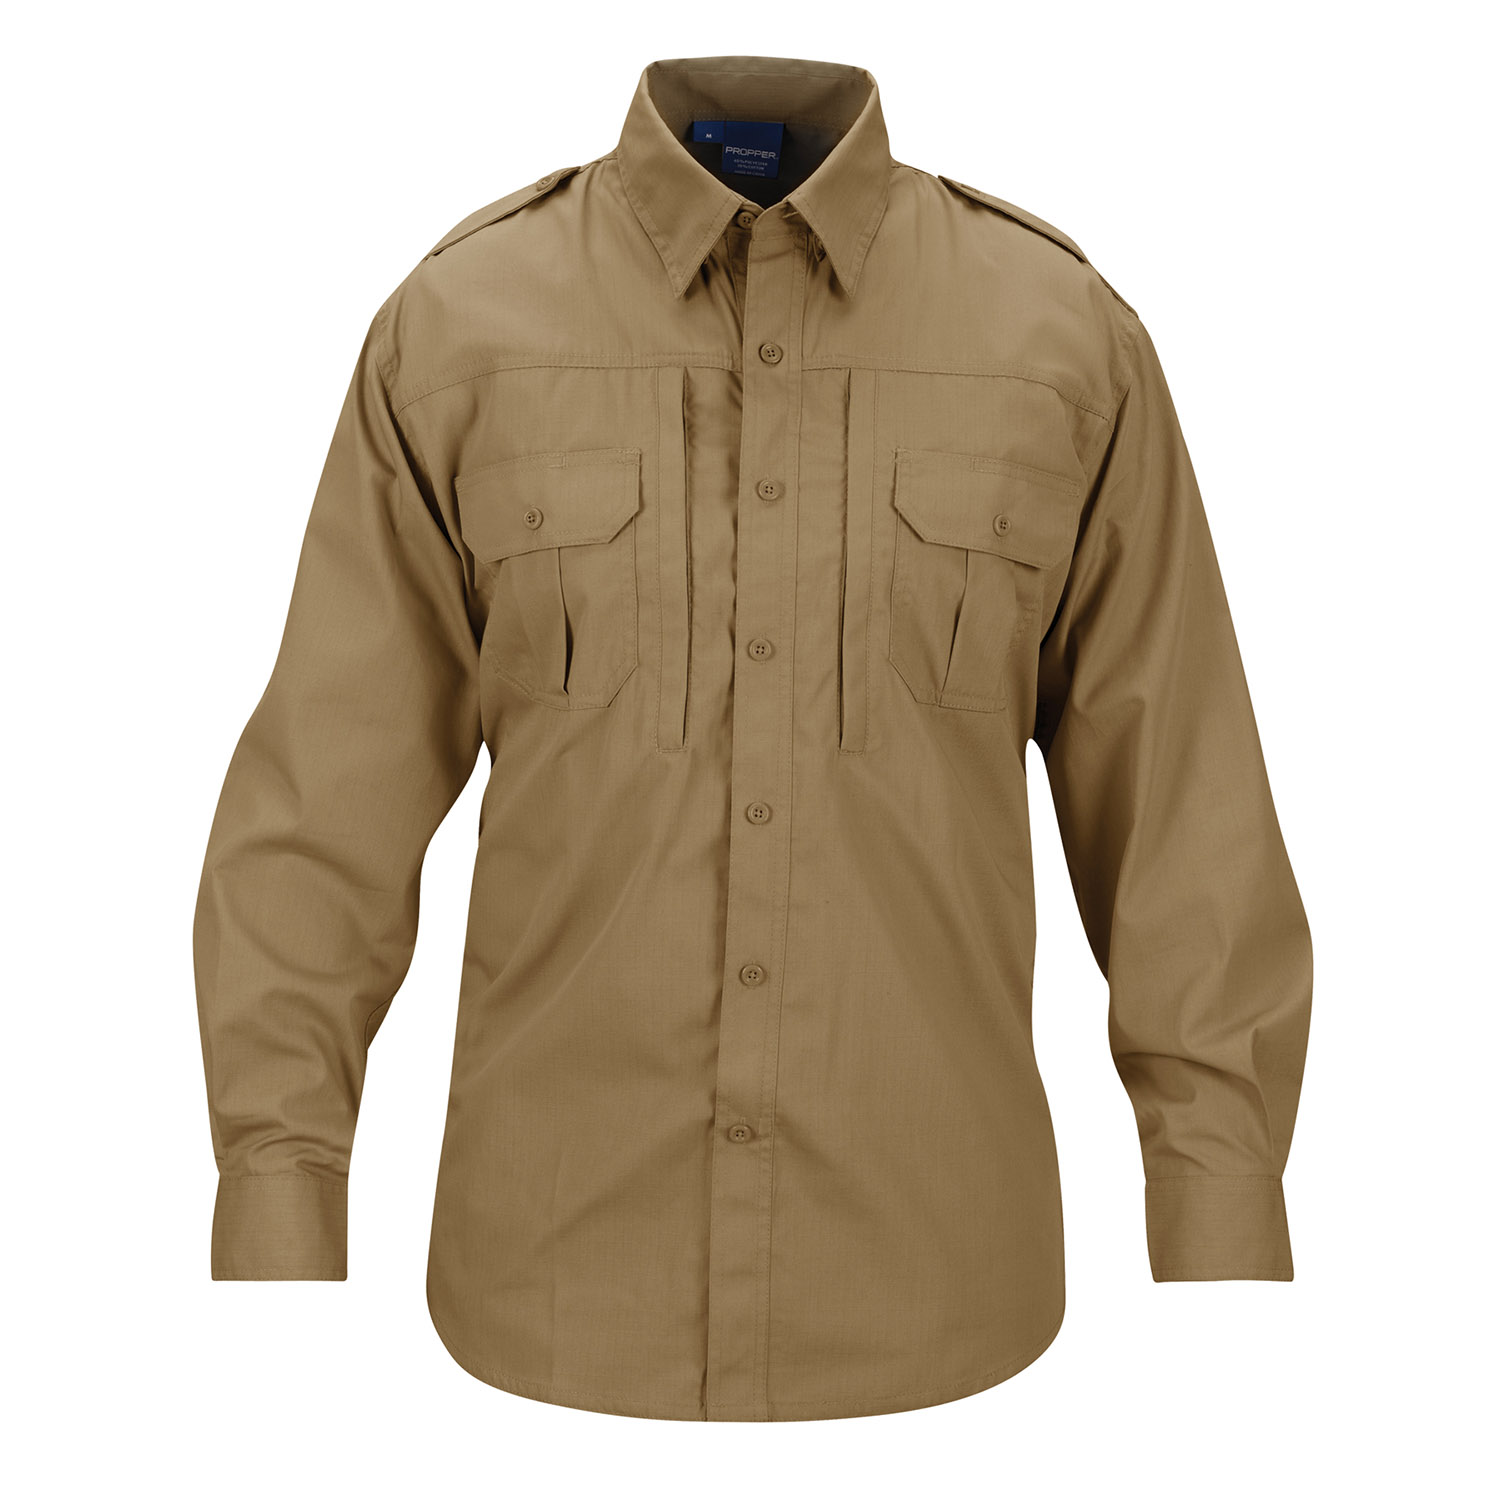 Find great deals on eBay for shirt lightweight long sleeve mens. Shop with confidence.